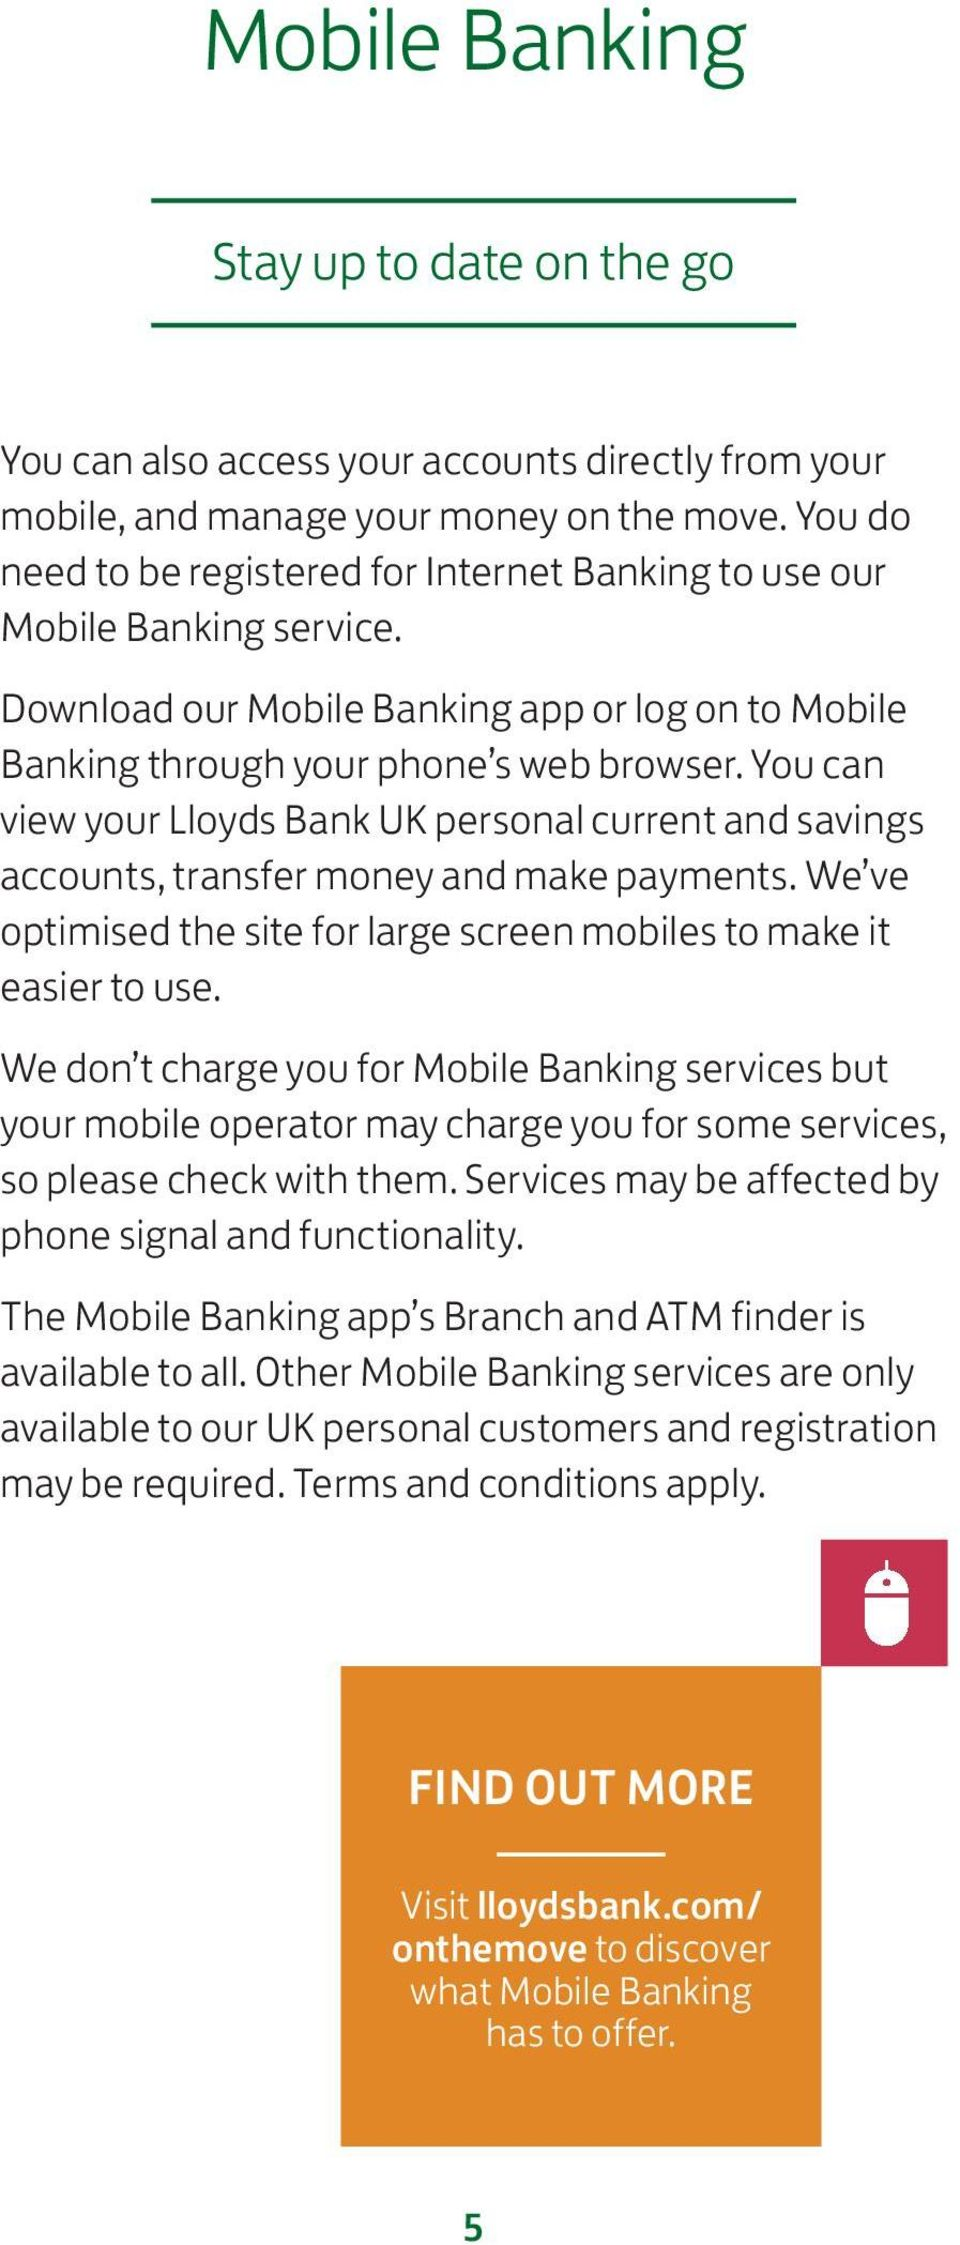 You can view your Lloyds Bank UK personal current and savings accounts, transfer money and make payments. We ve optimised the site for large screen mobiles to make it easier to use.